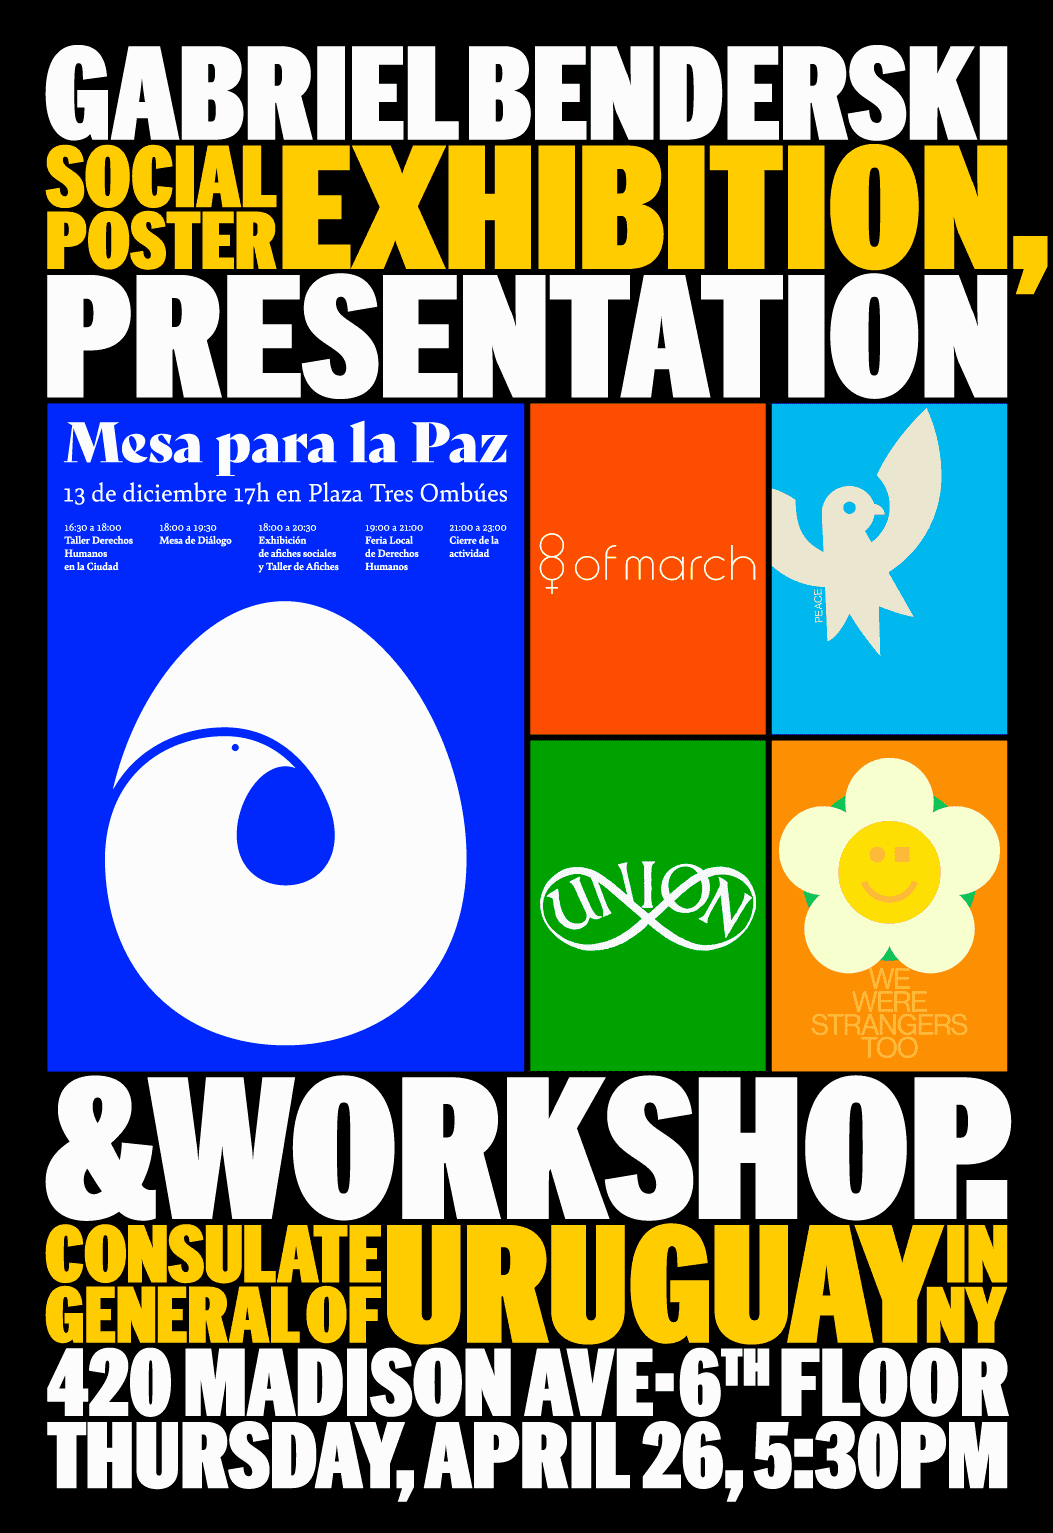 Social Poster Exhibition, Presentation and workshop